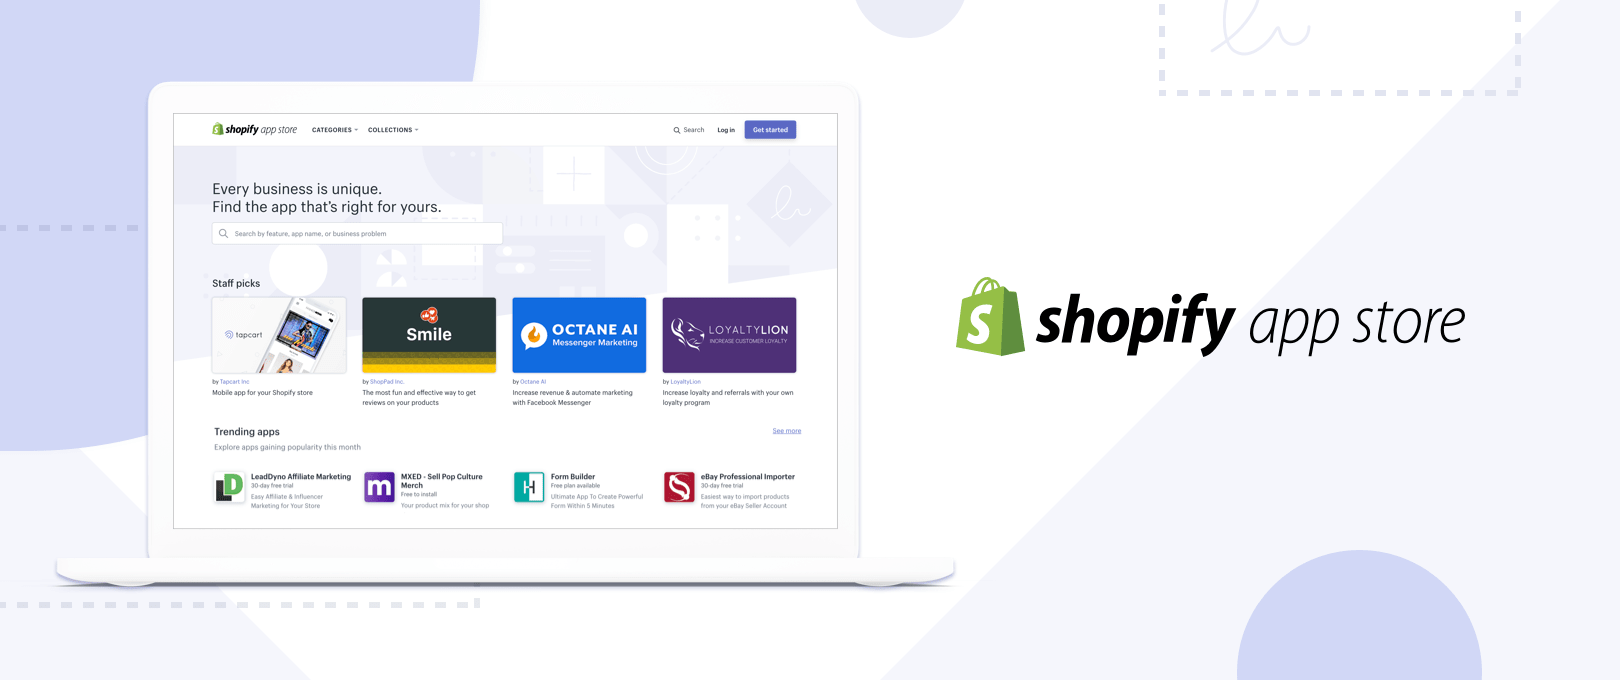 Beeketing and Boostflow App Alternatives for Shopify